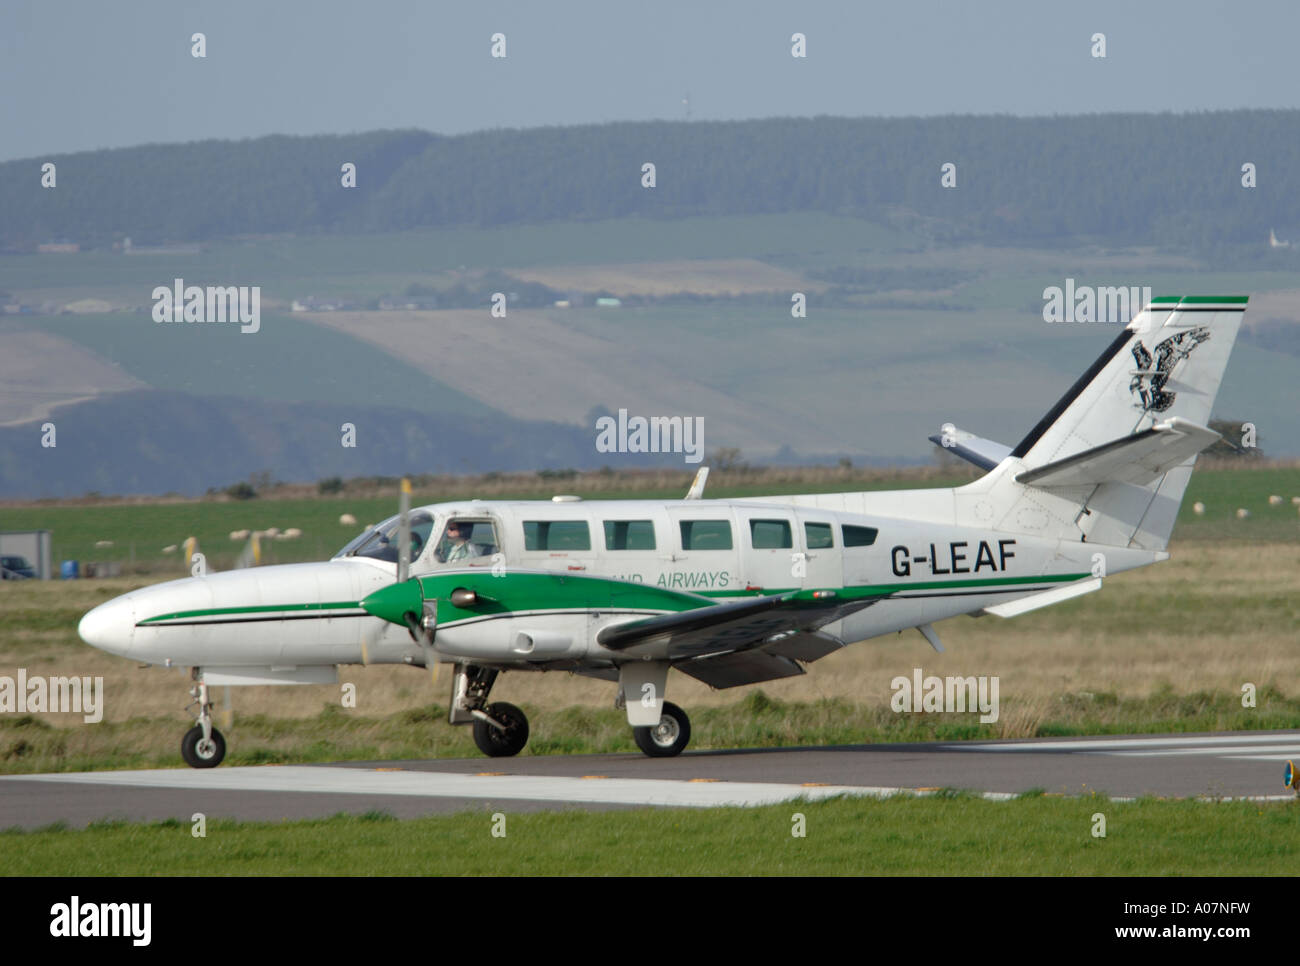 Reims-Cessna 406 Caravan II arriving Inverness Dalcross Airport.  XAV 4003-380 - Stock Image